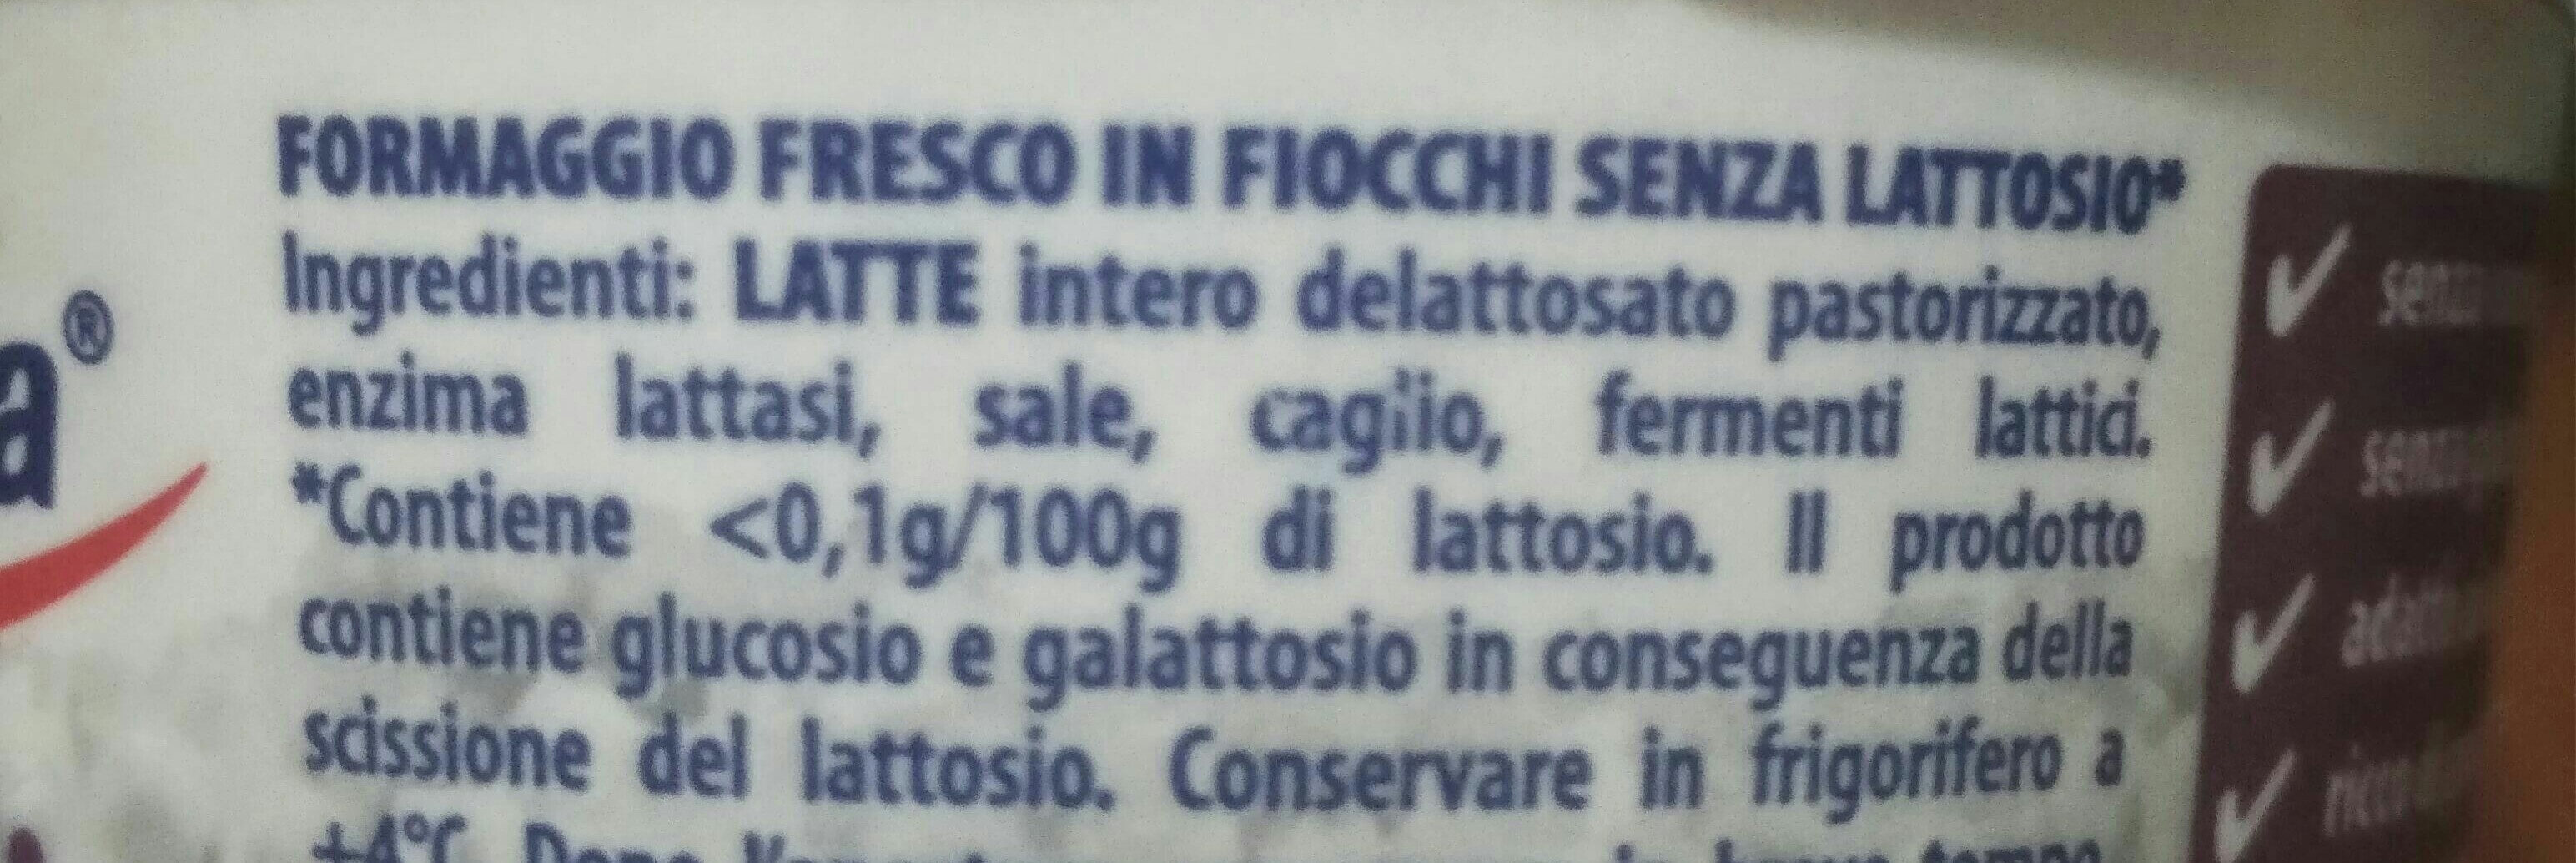 Fiocchi di latte senza lattosio - Ingredienti - it